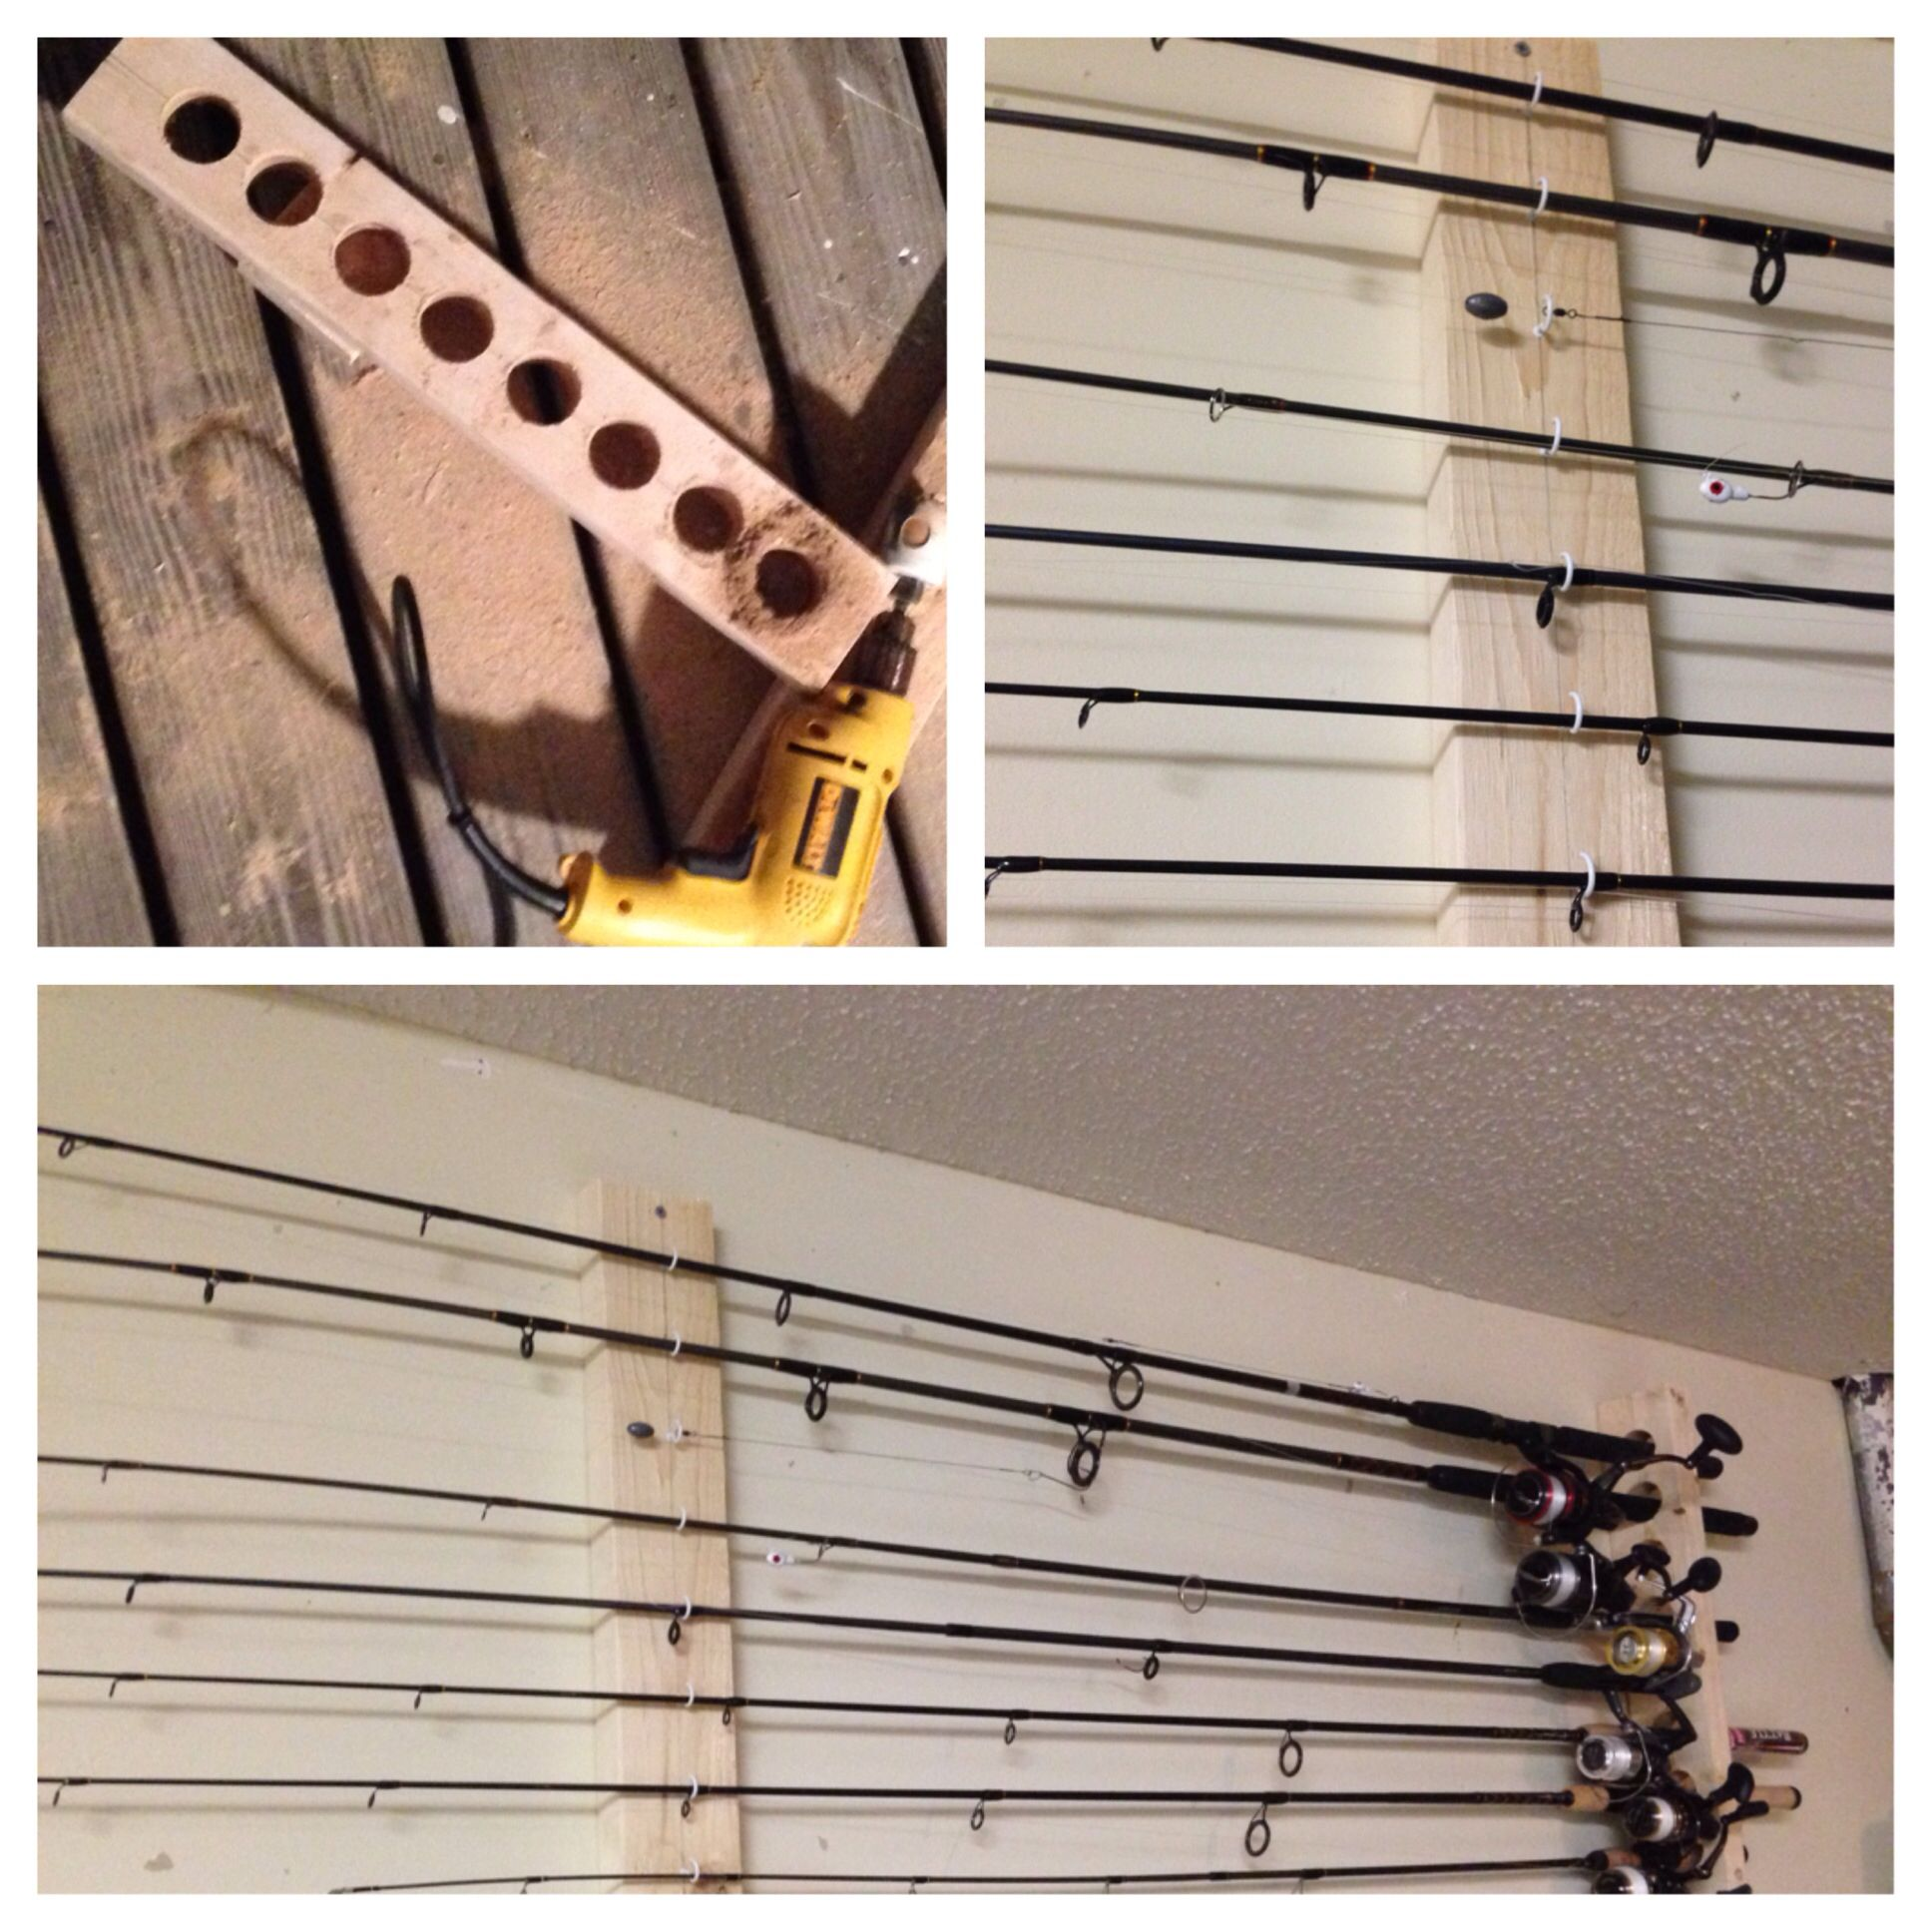 Diy fishing pole rack fishing tips pinterest for Diy fishing pole rack